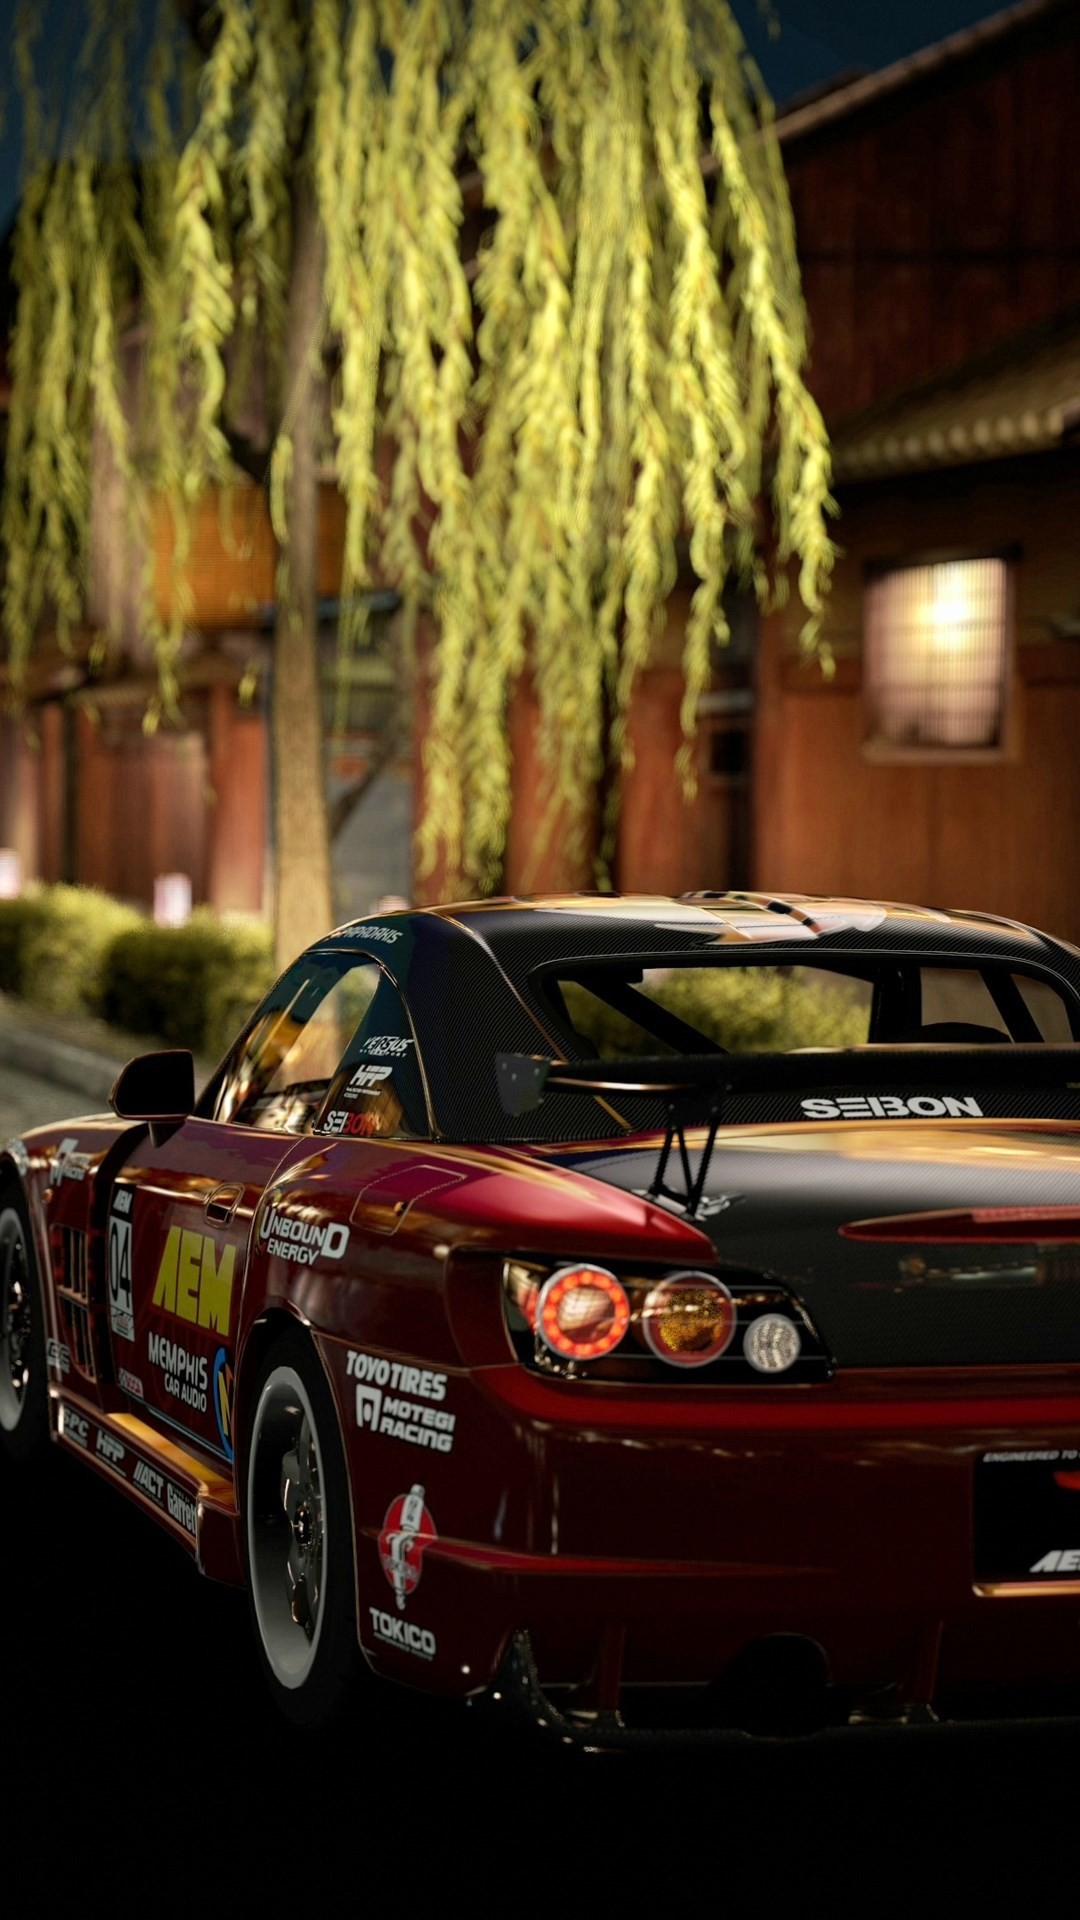 1920x1080 2 Fast 2 Furious Car Wallpaper Awesome Nissan Fast Cars Best Of forza 5 Fast Furious Car Build Brians R34